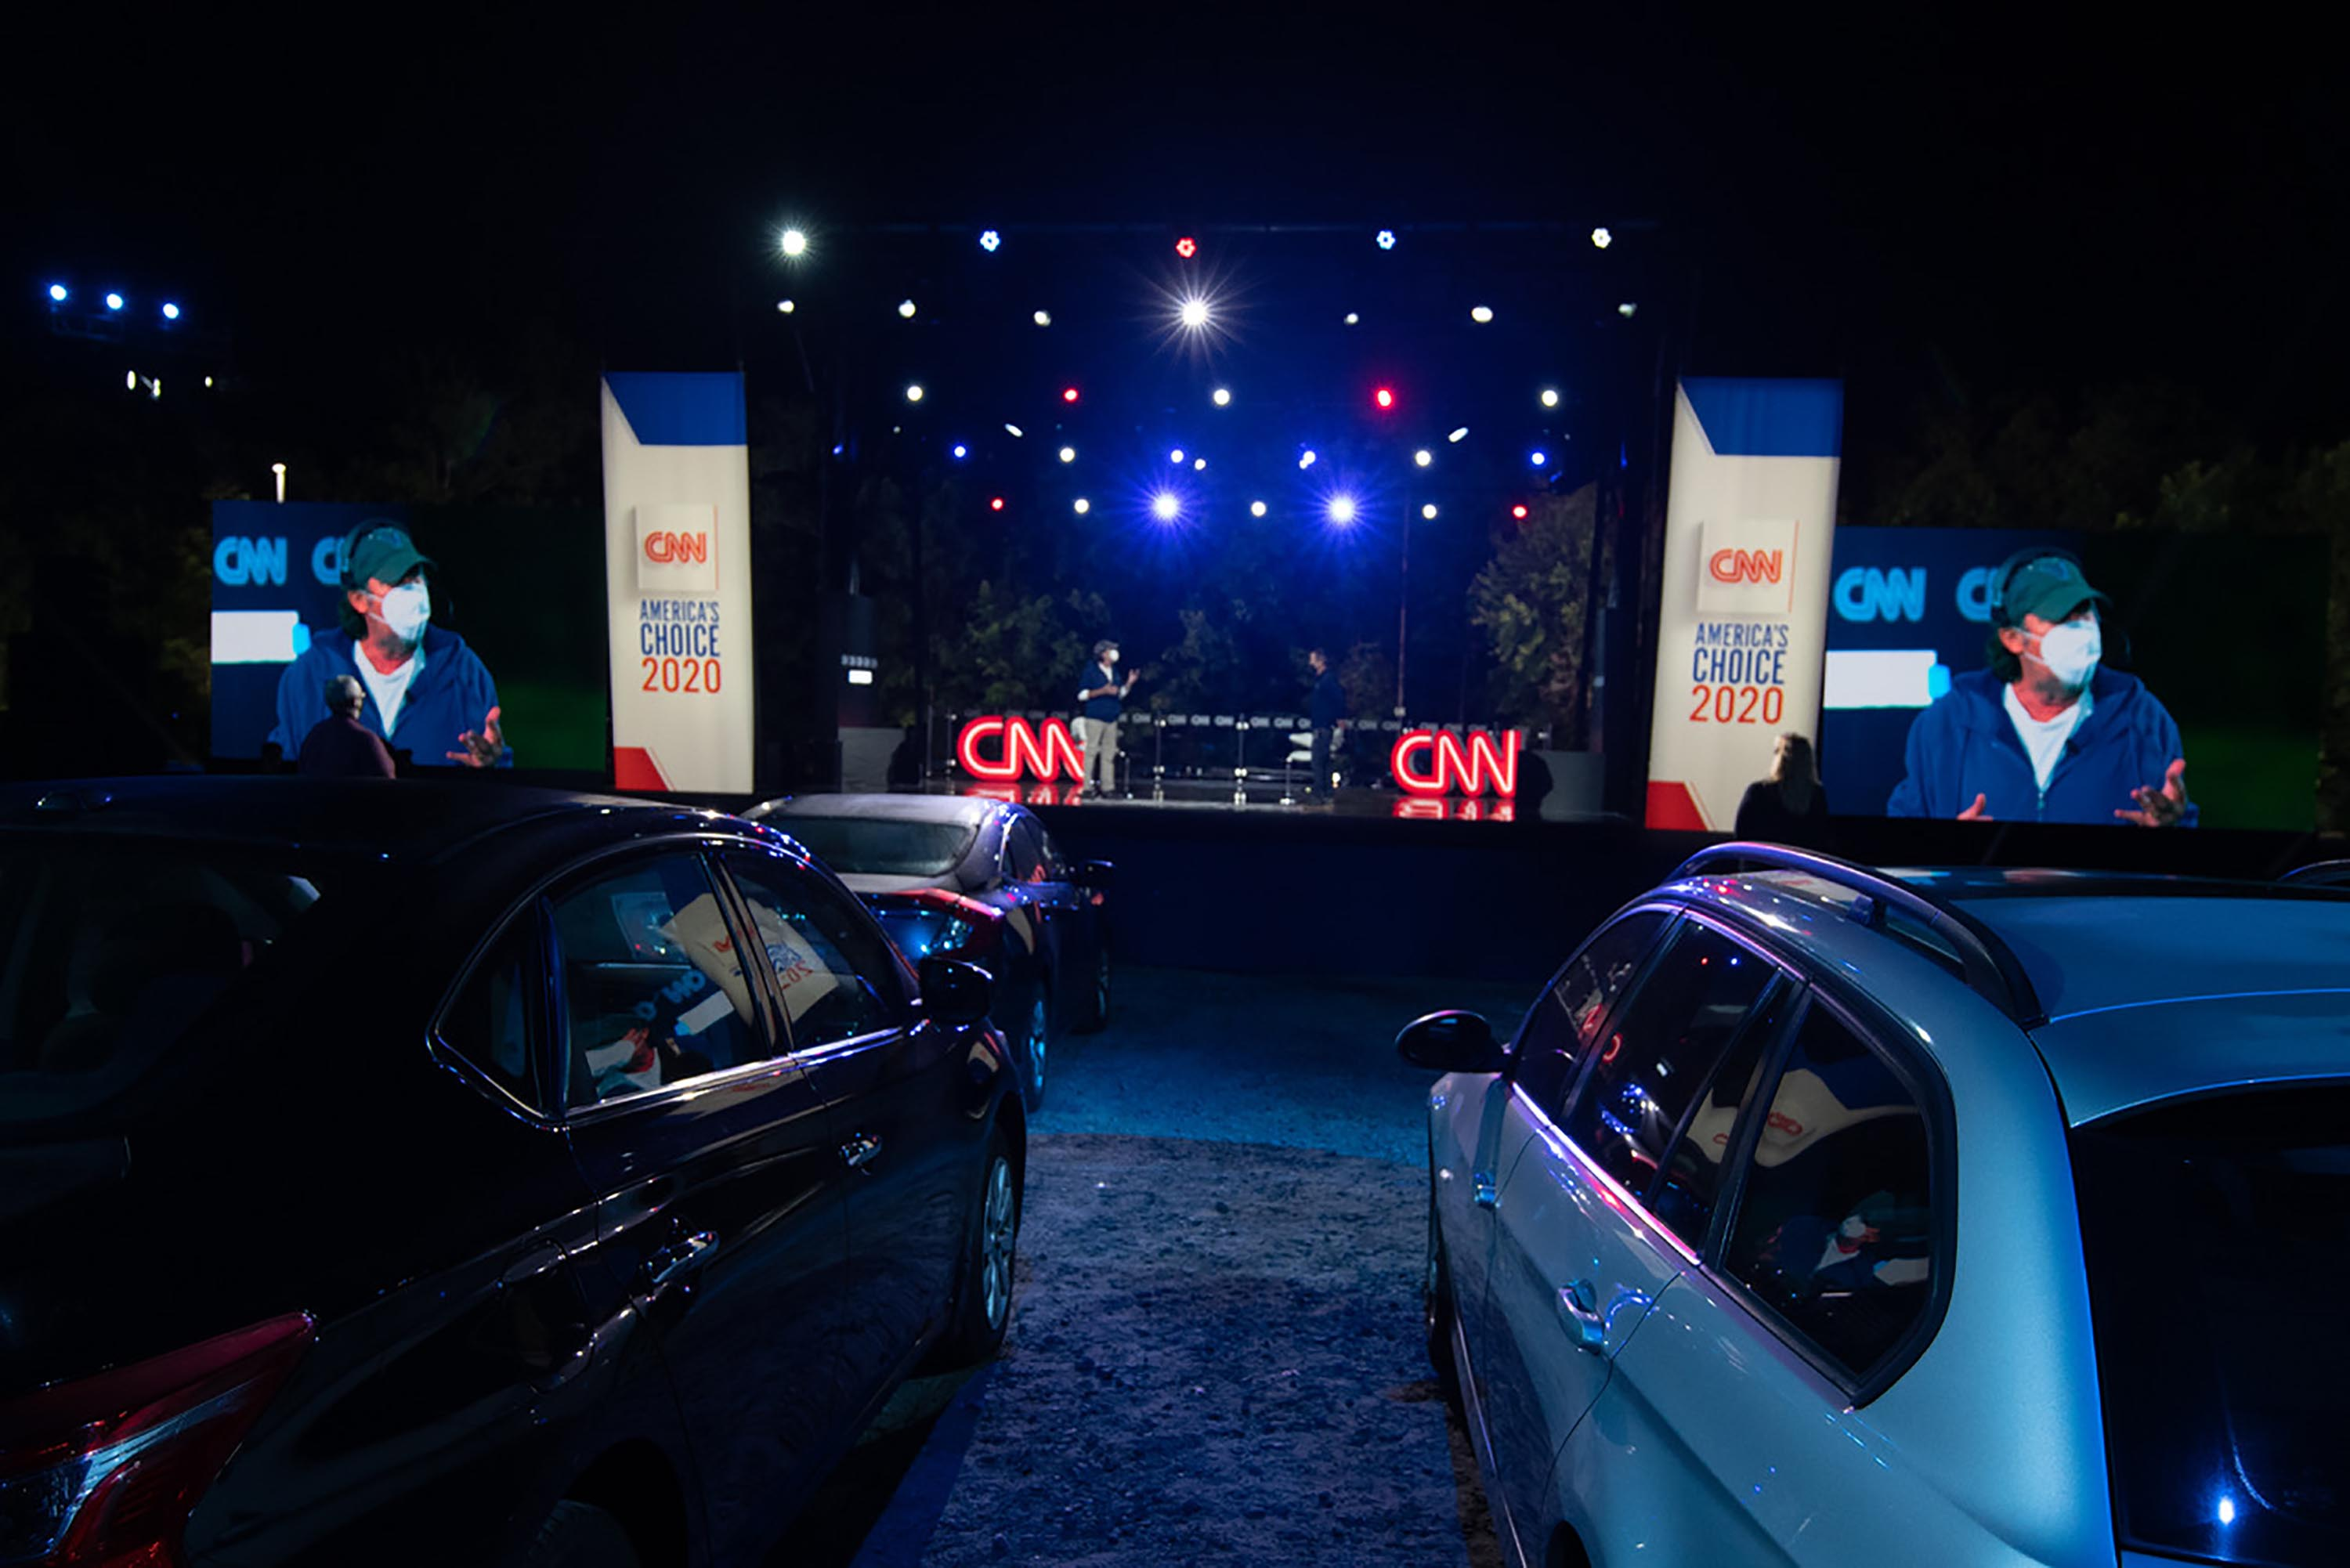 CNN to host first drive-in town hall due to coronavirus pandemic